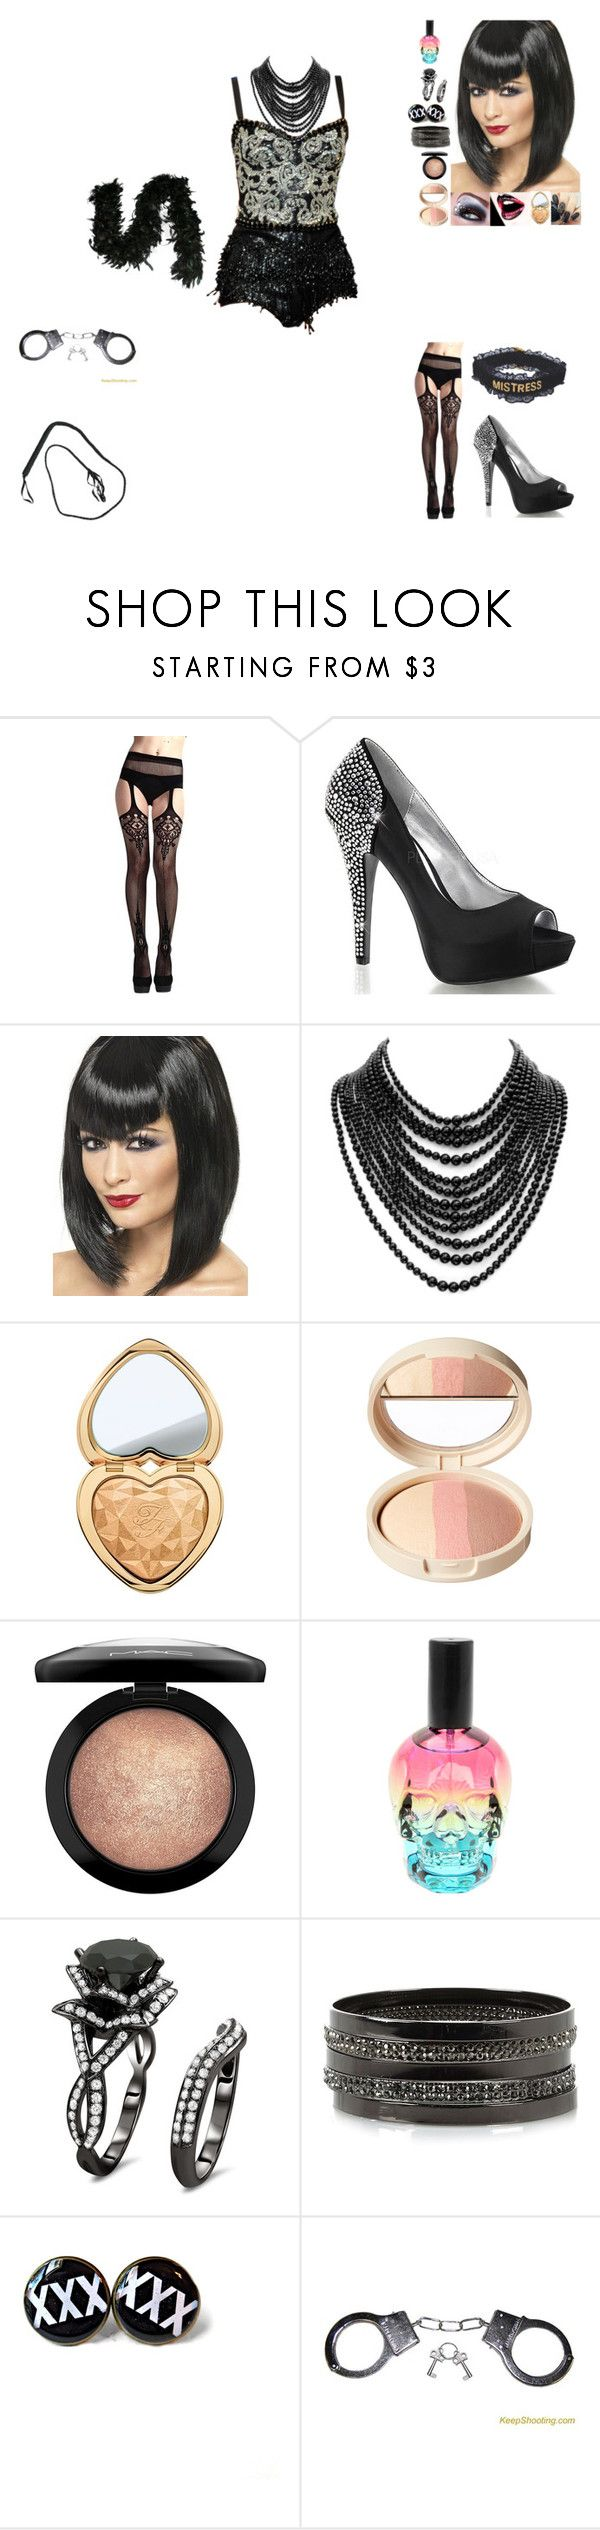 """Burlesque night, the warrior, seconed number"" by frostedrose ❤ liked on Polyvore featuring Tom Binns, Too Faced Cosmetics, Laura Geller, MAC Cosmetics, Hot Topic and River Island"